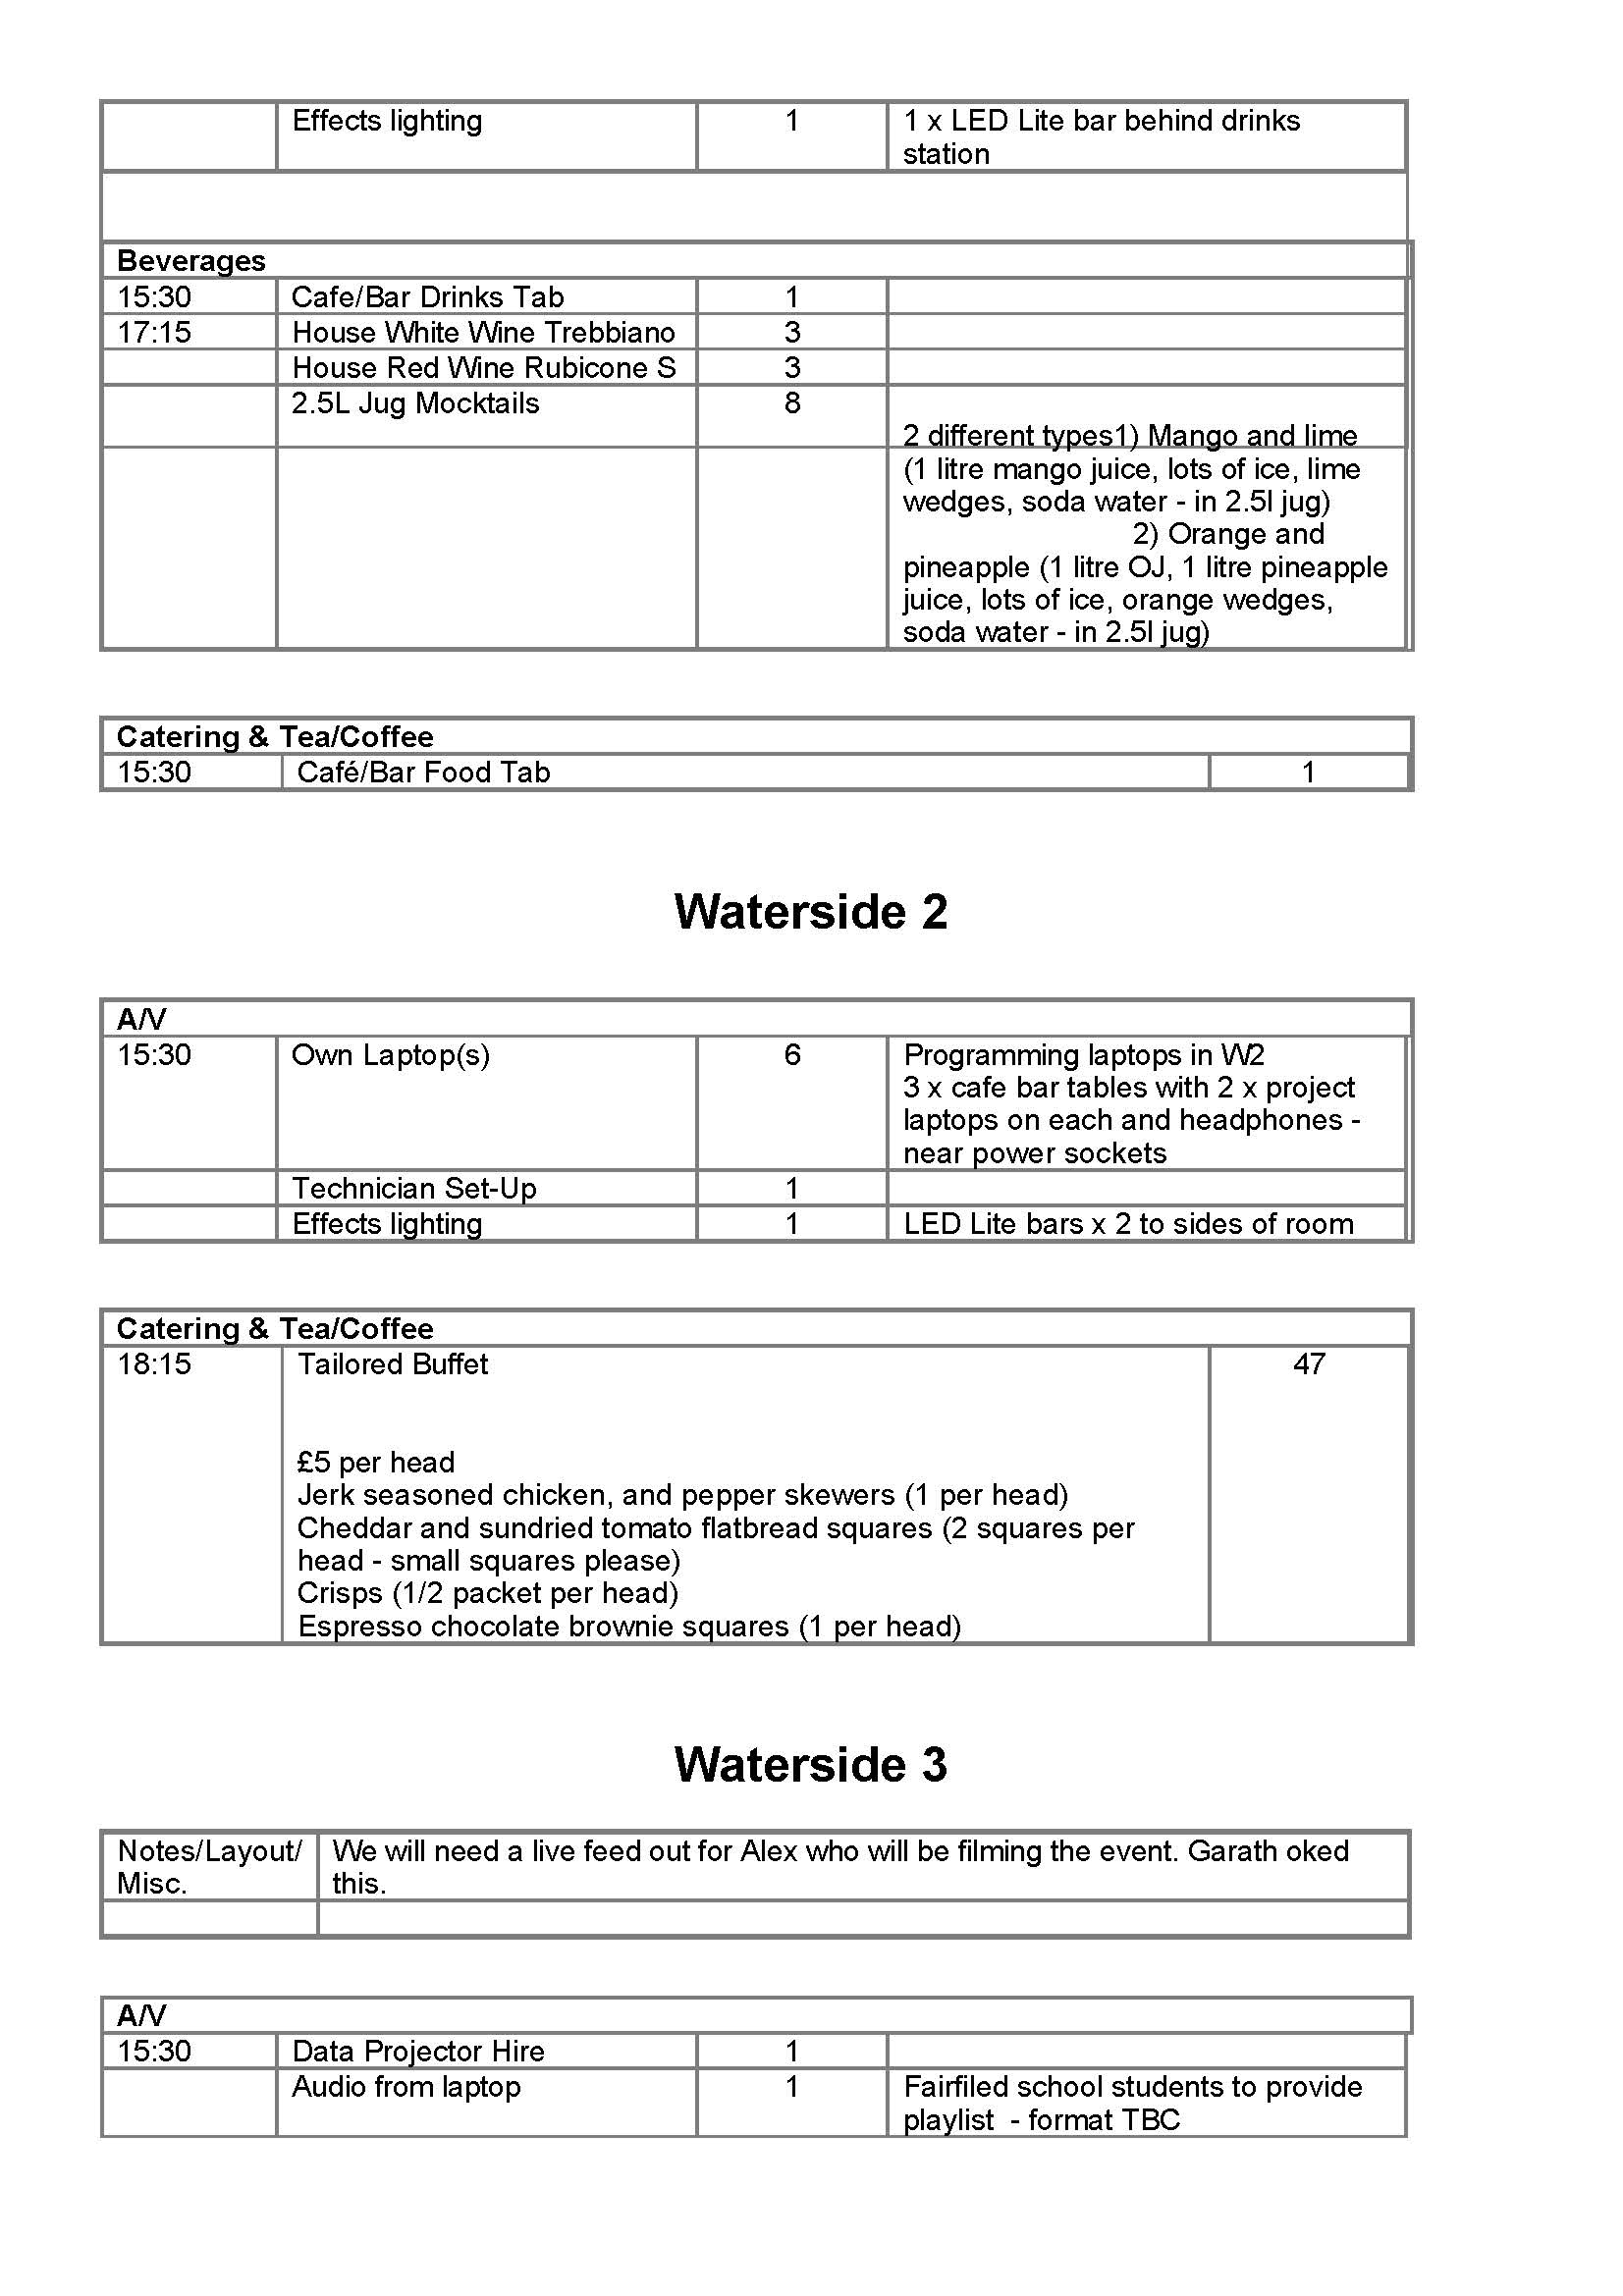 Watershed Function Sheet Arrangement 4 Page 2